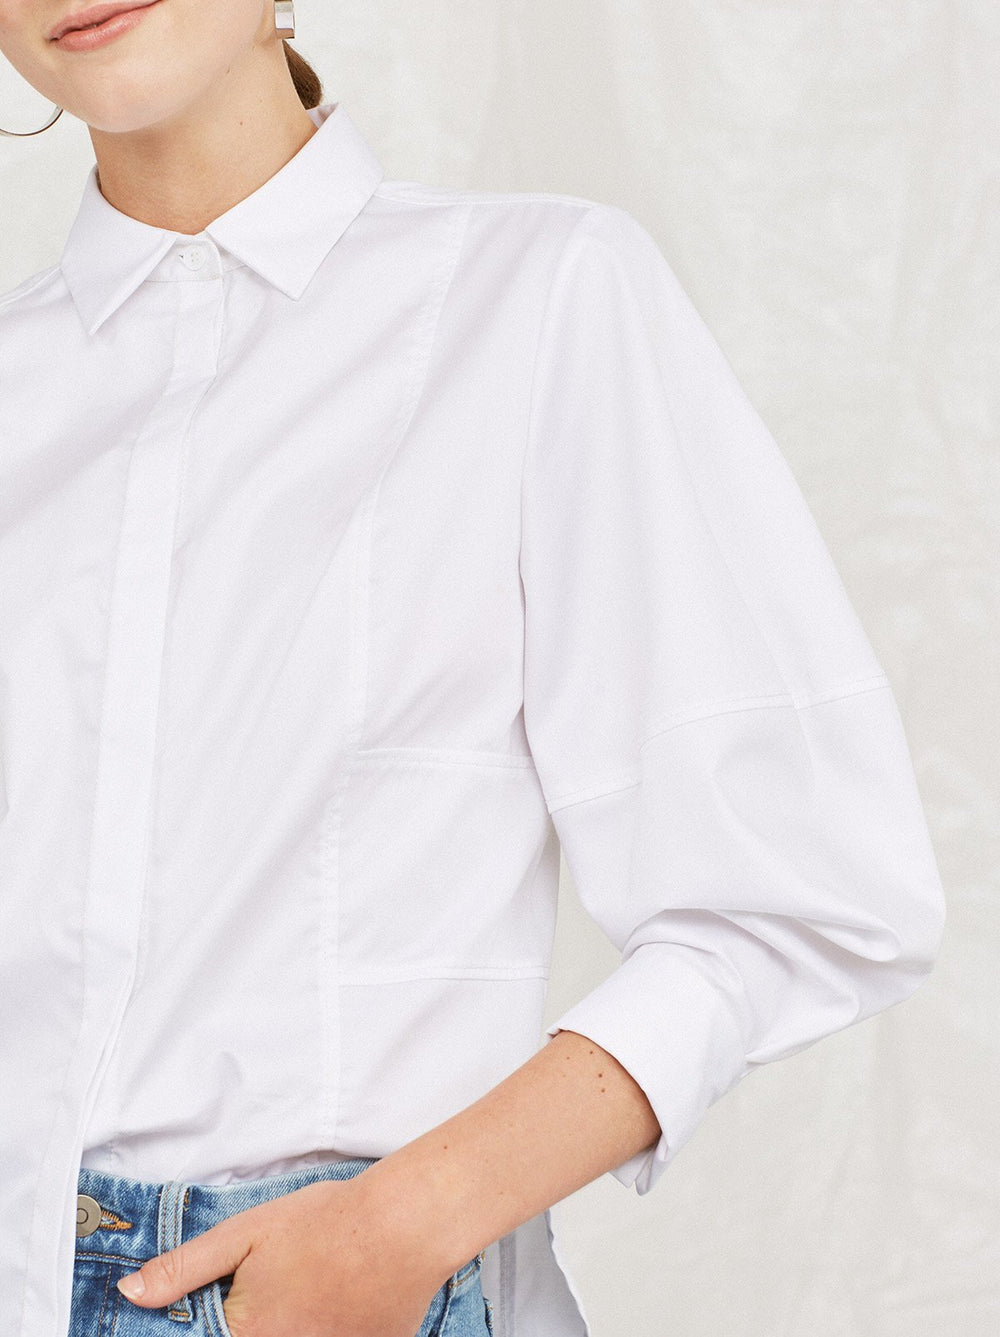 Isabella Panelled Shirt